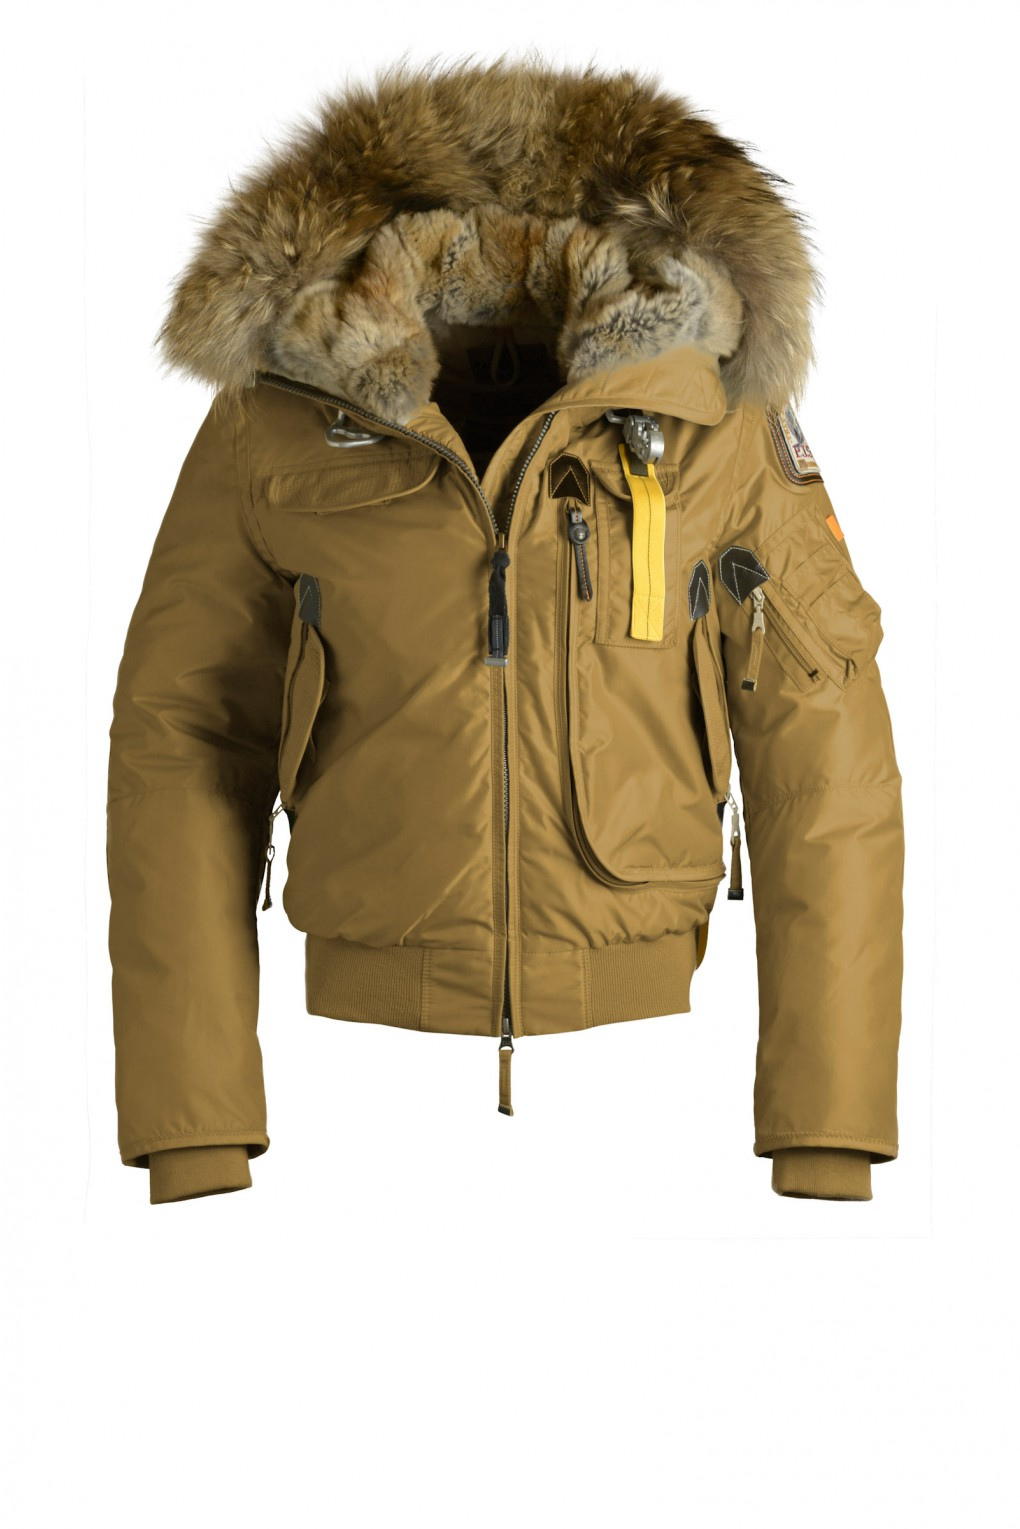 parajumpers GOBI woman outerwear Honey